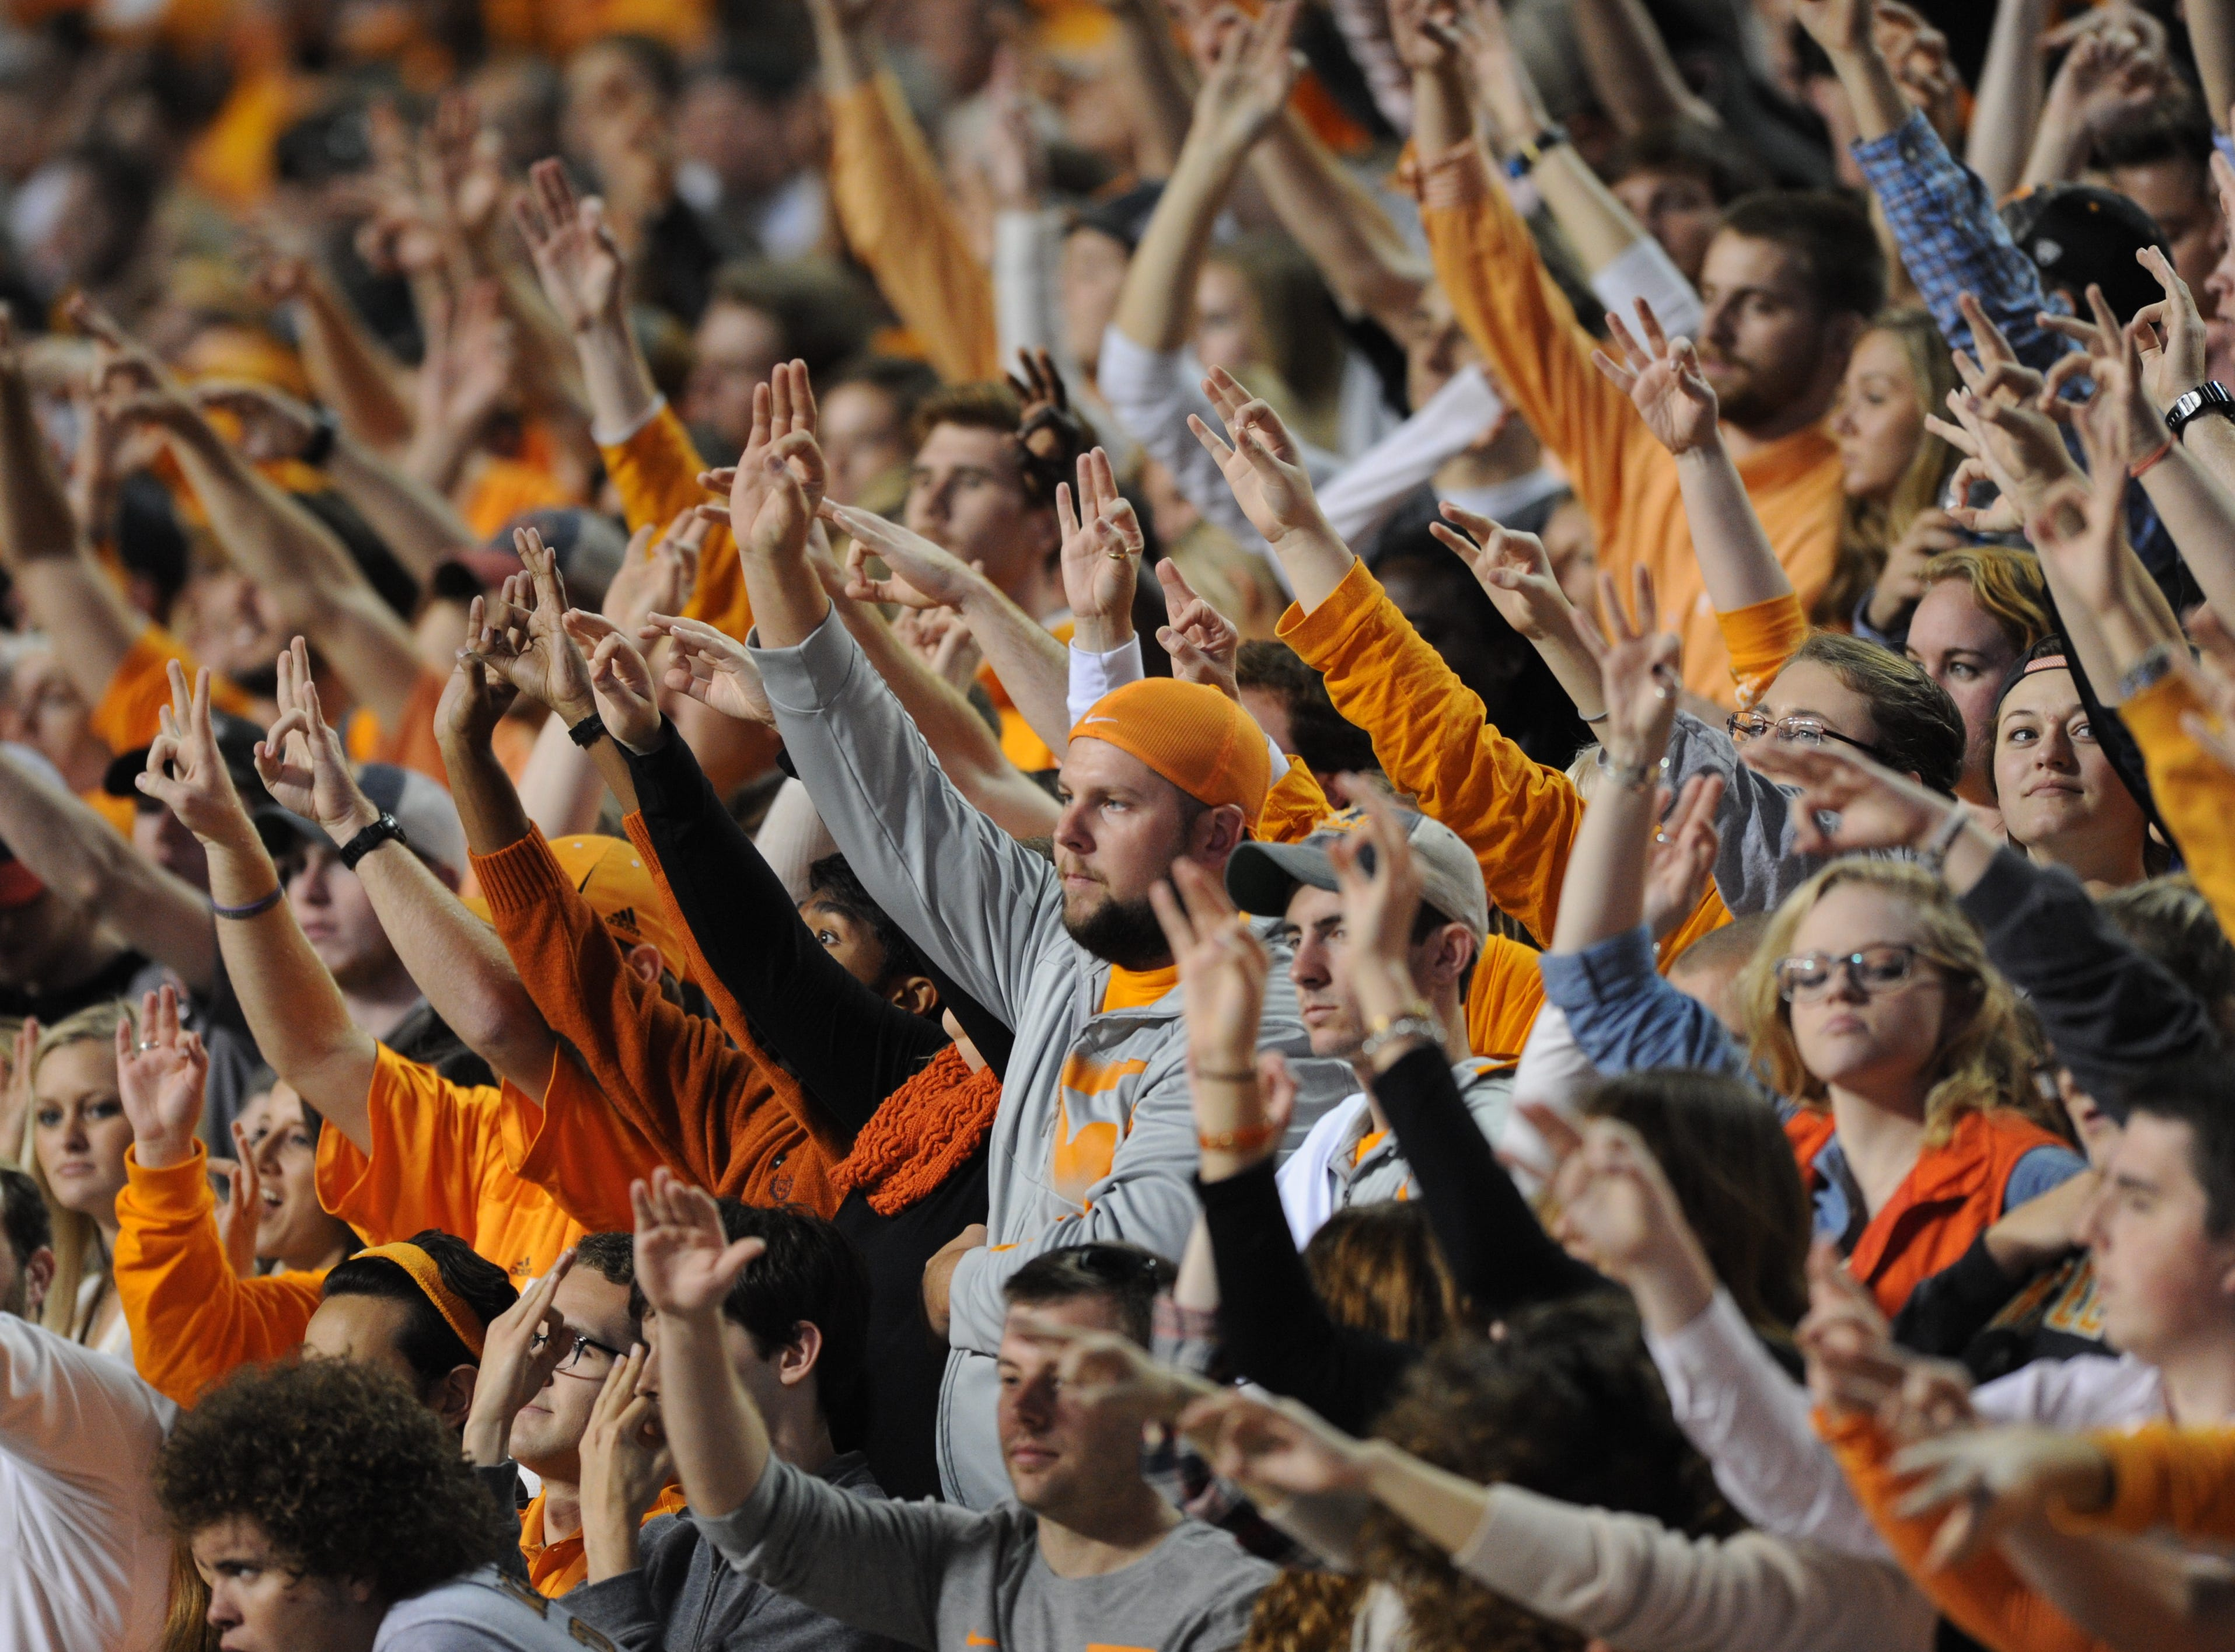 Tennessee fans cheer on the team against Vanderbilt during the second half at Neyland Stadium in Knoxville, Tenn. on Saturday, Nov. 28, 2015.